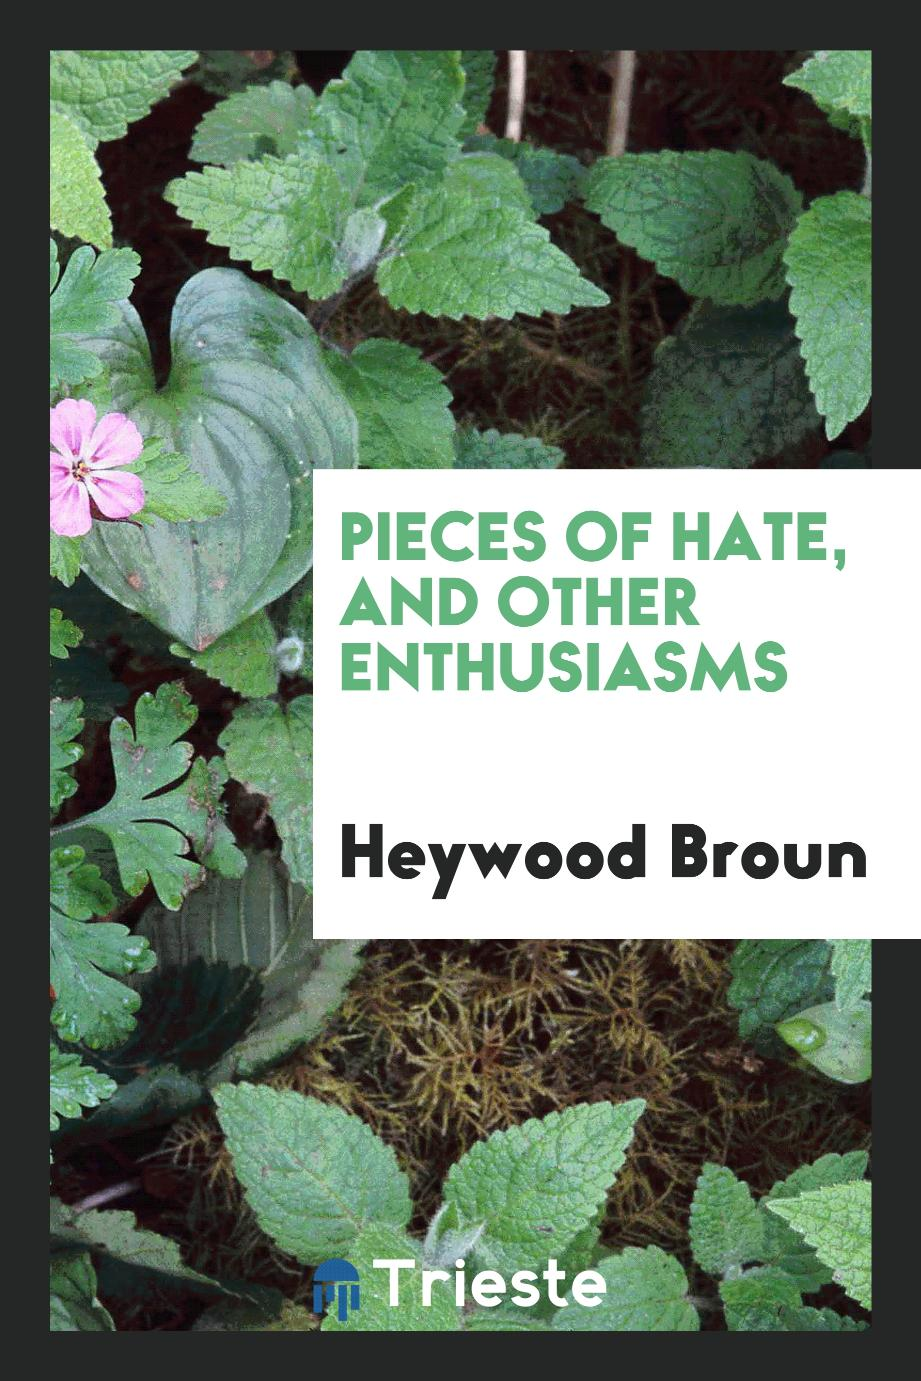 Pieces of hate, and other enthusiasms